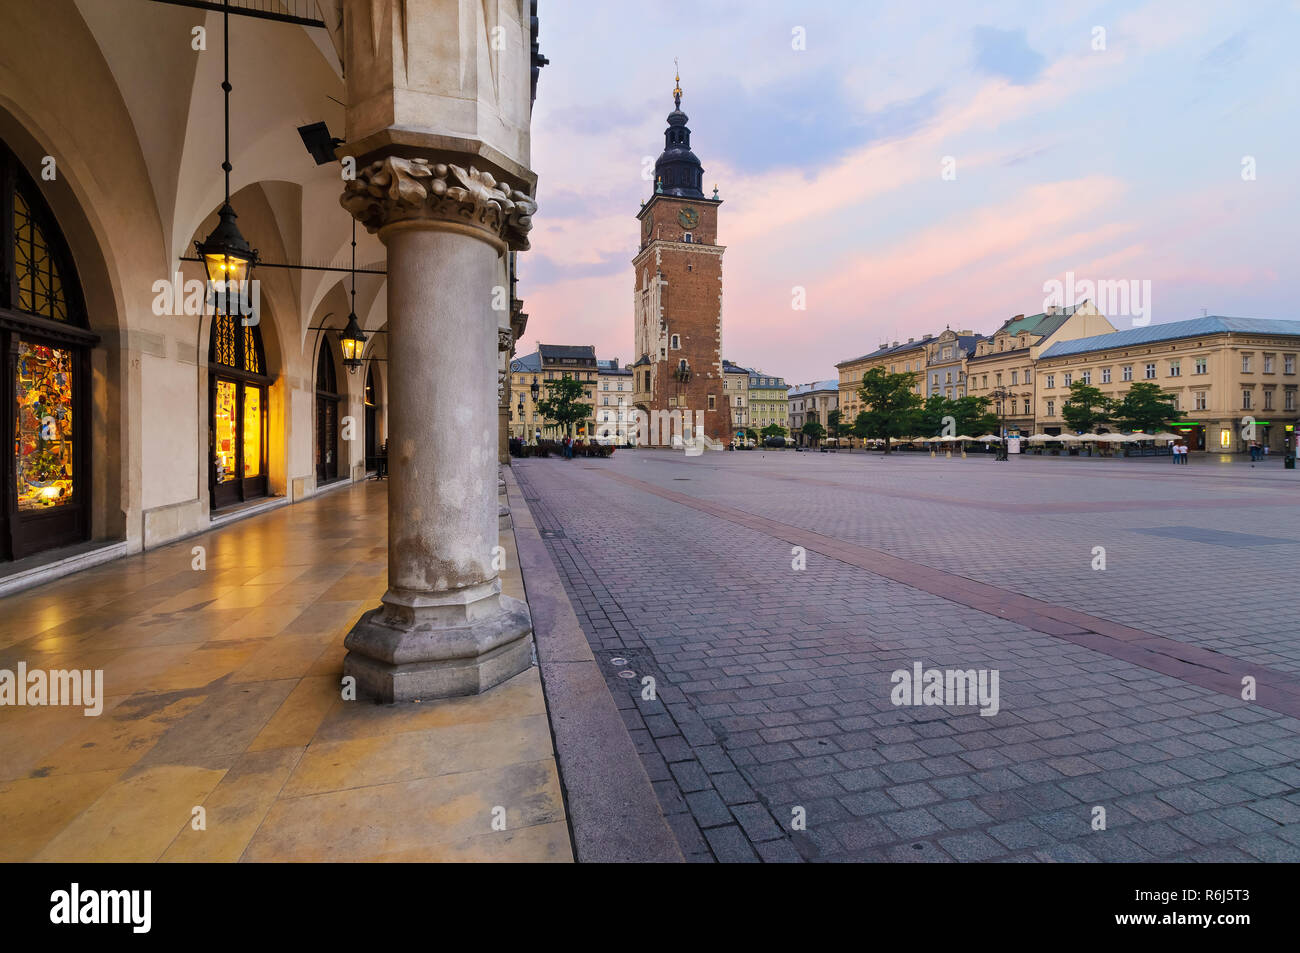 Town hall tower in the main square of  Krakow. Poland. Stock Photo